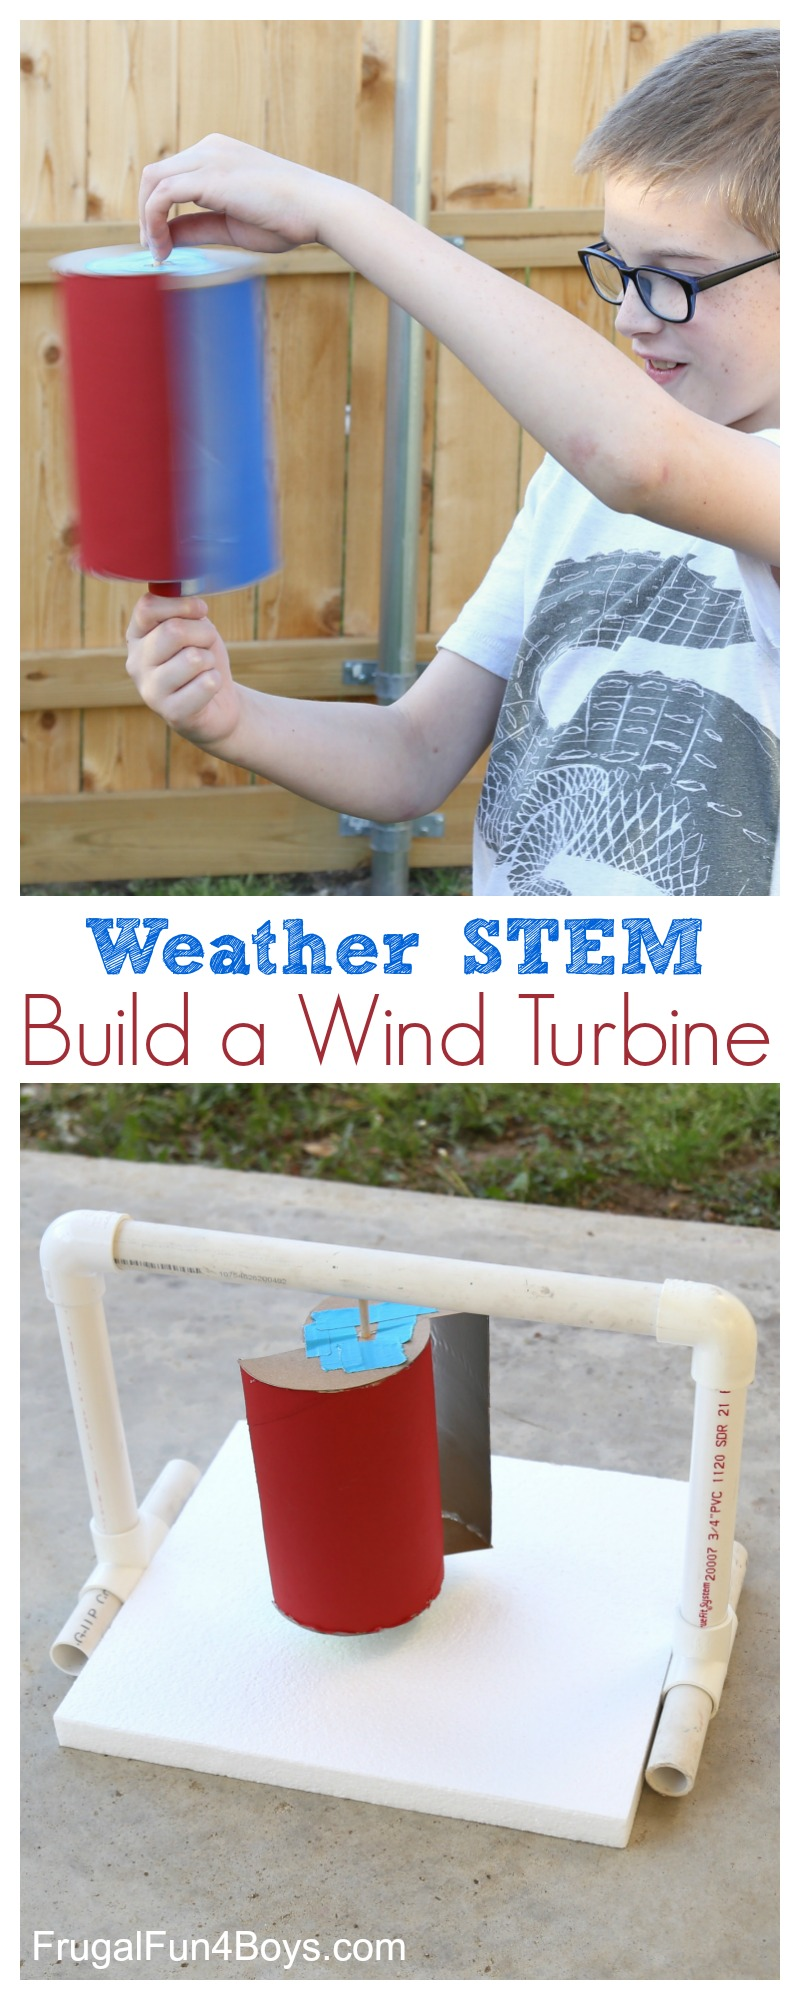 Build a Wind Turbine! Weather science and engineering project.